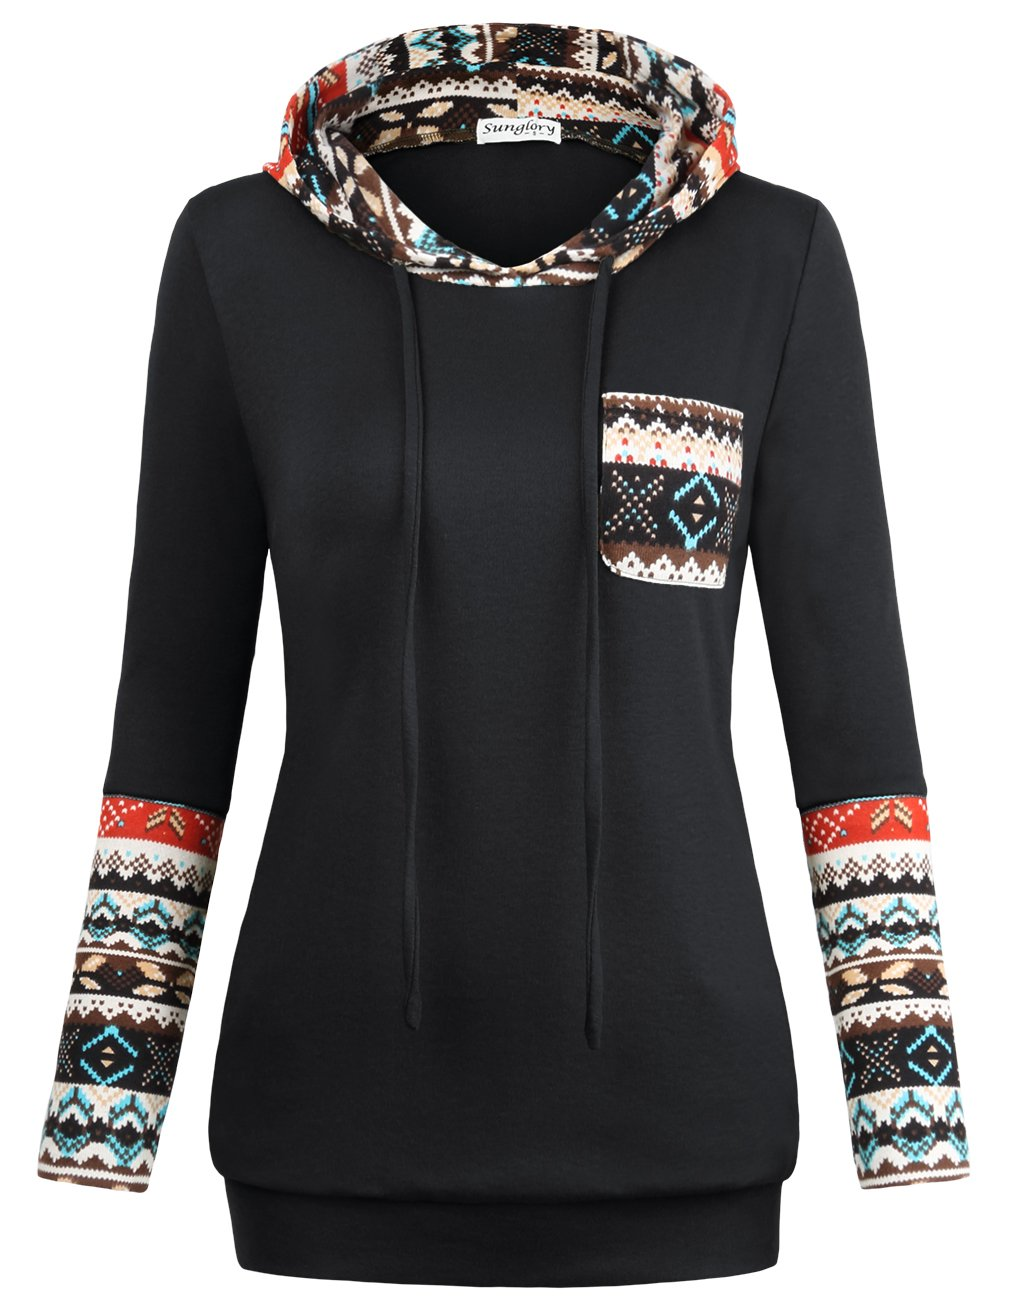 SUNGLORY Pullover Sweatshirt,Relaxed Fit Long Sleeve Tops Sweatshirt Tunics